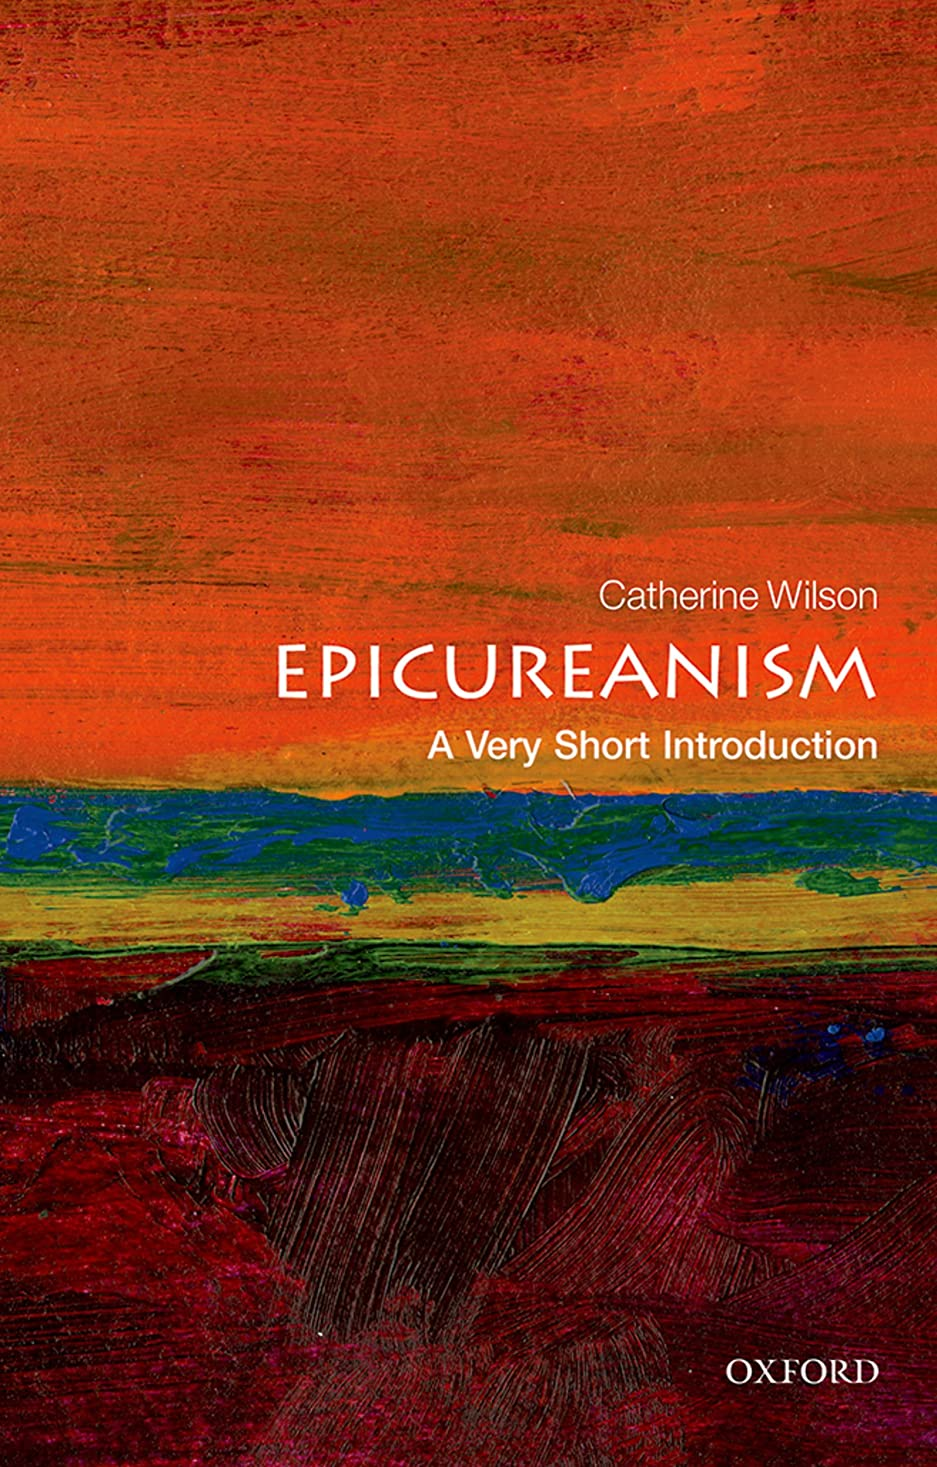 絞る下品レガシーEpicureanism: A Very Short Introduction (Very Short Introductions) (English Edition)